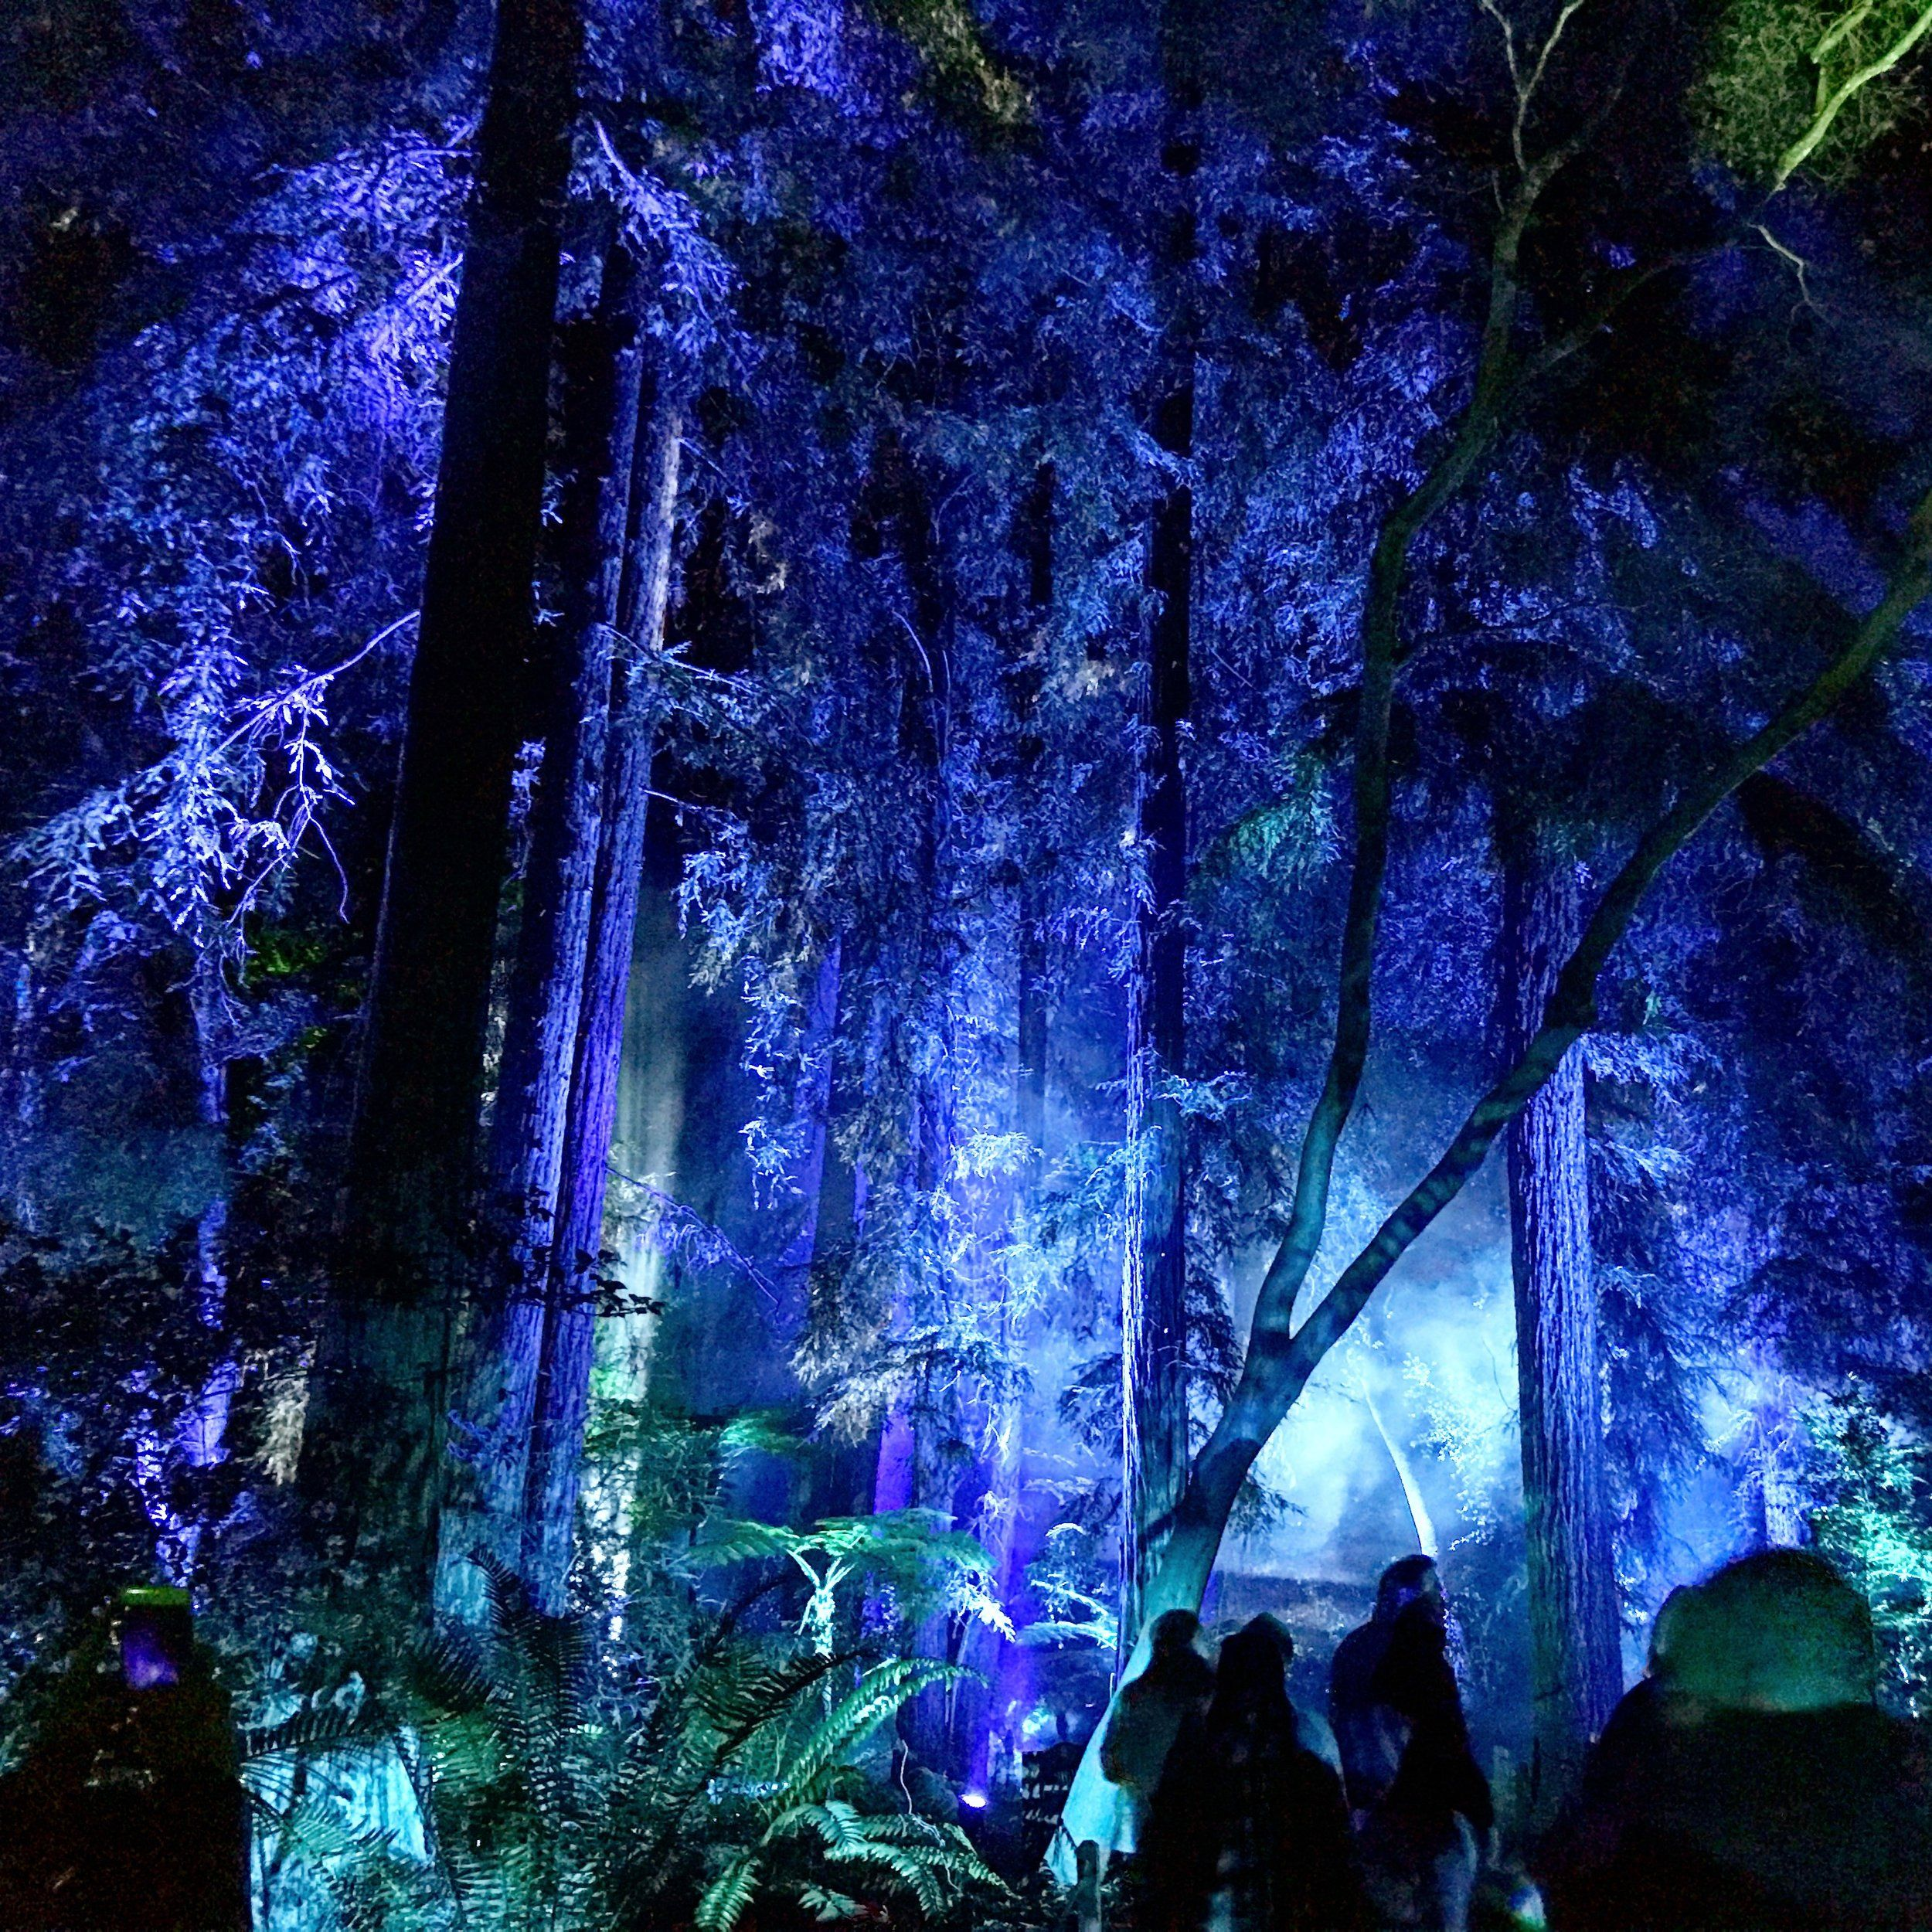 55d665c264011b7d84b53d121300b664 - Enchanted Forest Of Lights At Descanso Gardens